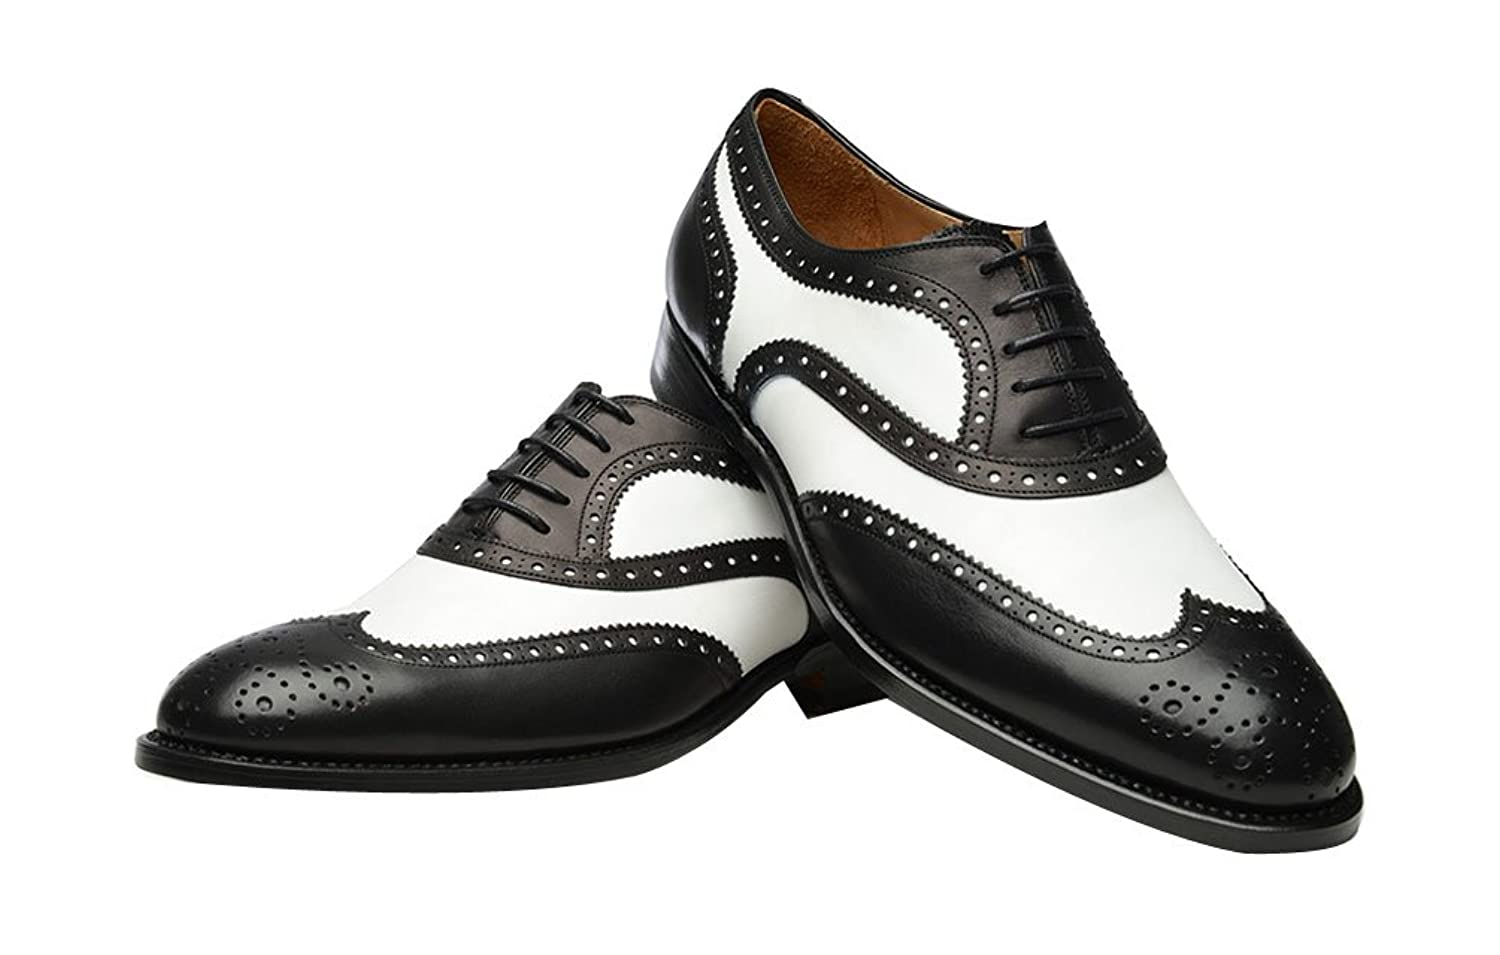 Dress in Great Gatsby Clothes for Men ROYAL WIND Geninue Leather Spectator Shoes Mens Black White Lace up Wing Tip Perforated Dress Shoes $79.99 AT vintagedancer.com